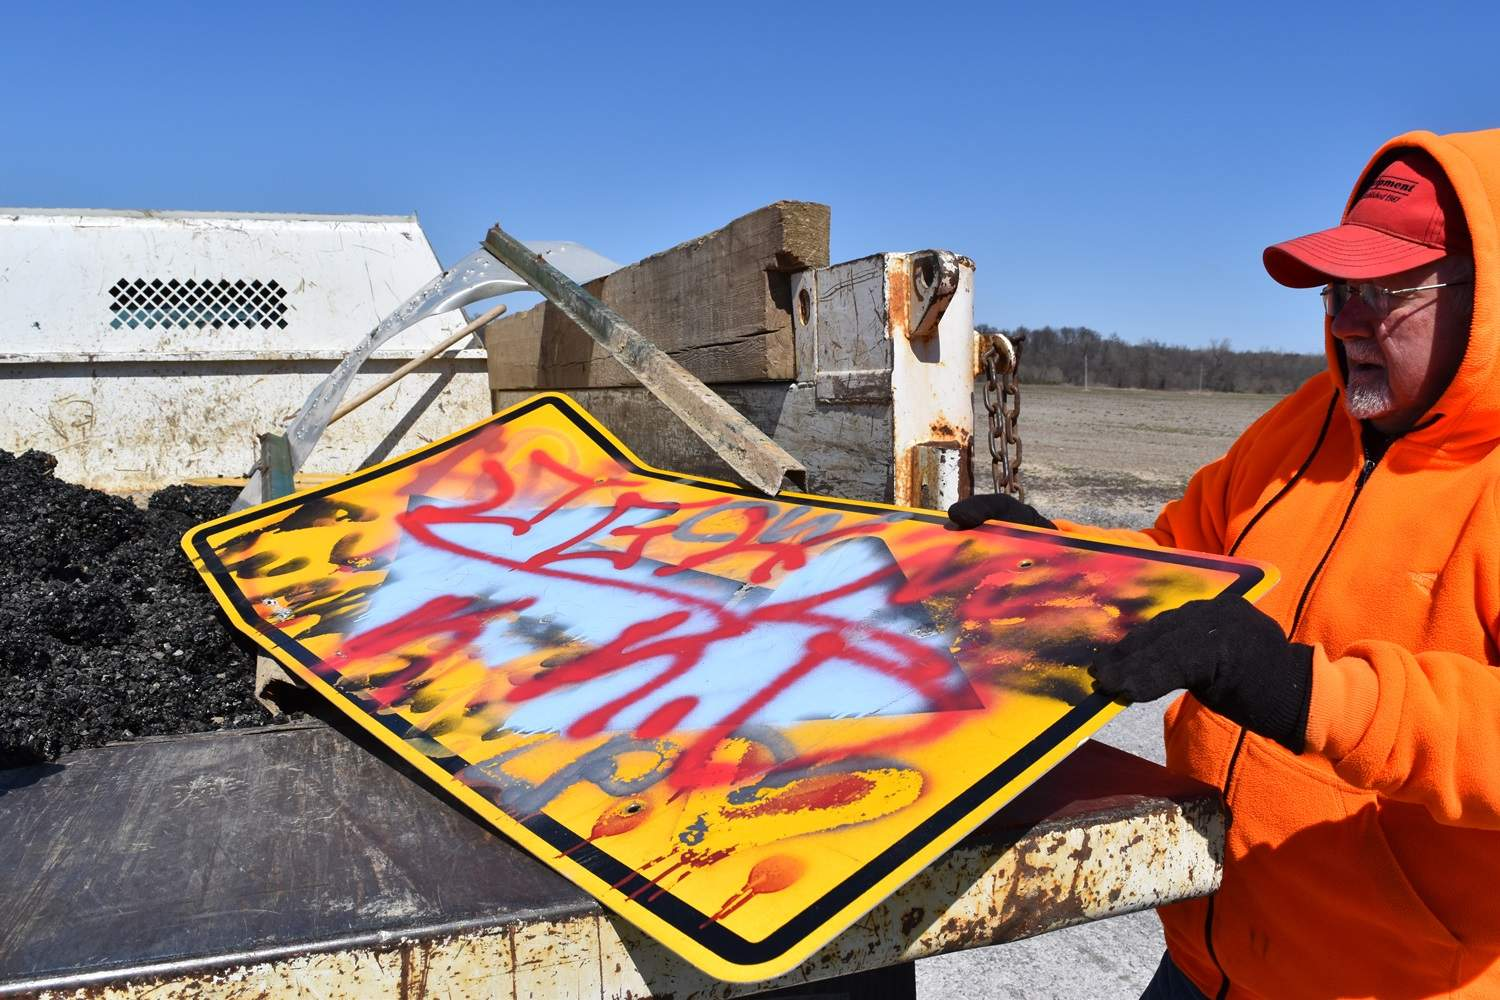 Harrisburg Township Road Commissioner Bob Holmes displays two recently vandalized signs from Mt. Moriah Road, north of Harrisburg. Holmes said sign vandalism is increasing, which costs townships significant money.